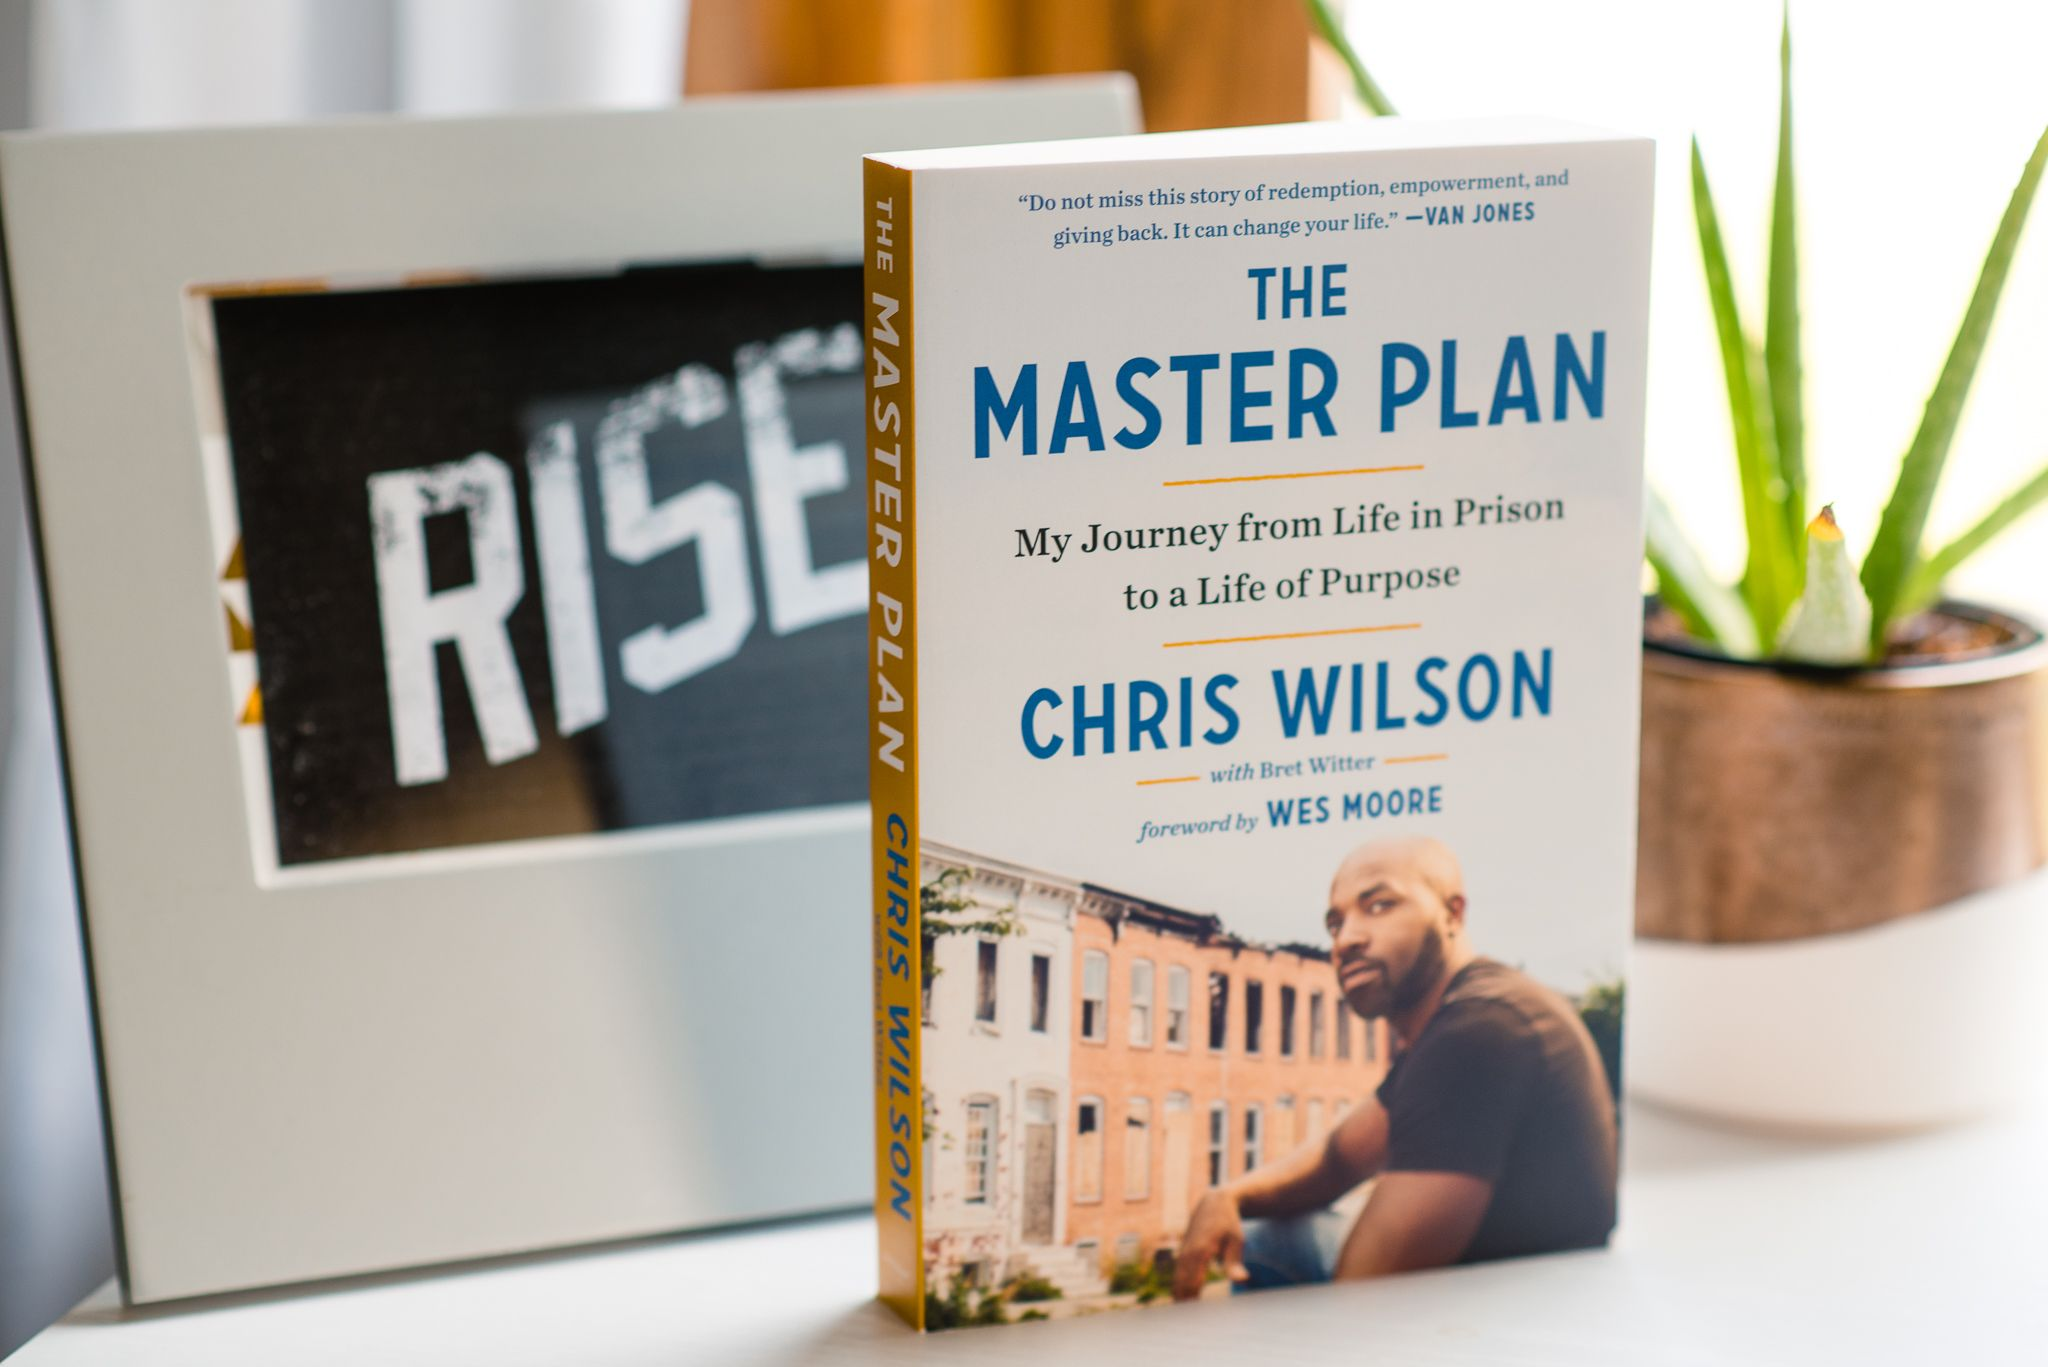 RISE Reads Recap: The Master Plan by Chris Wilson